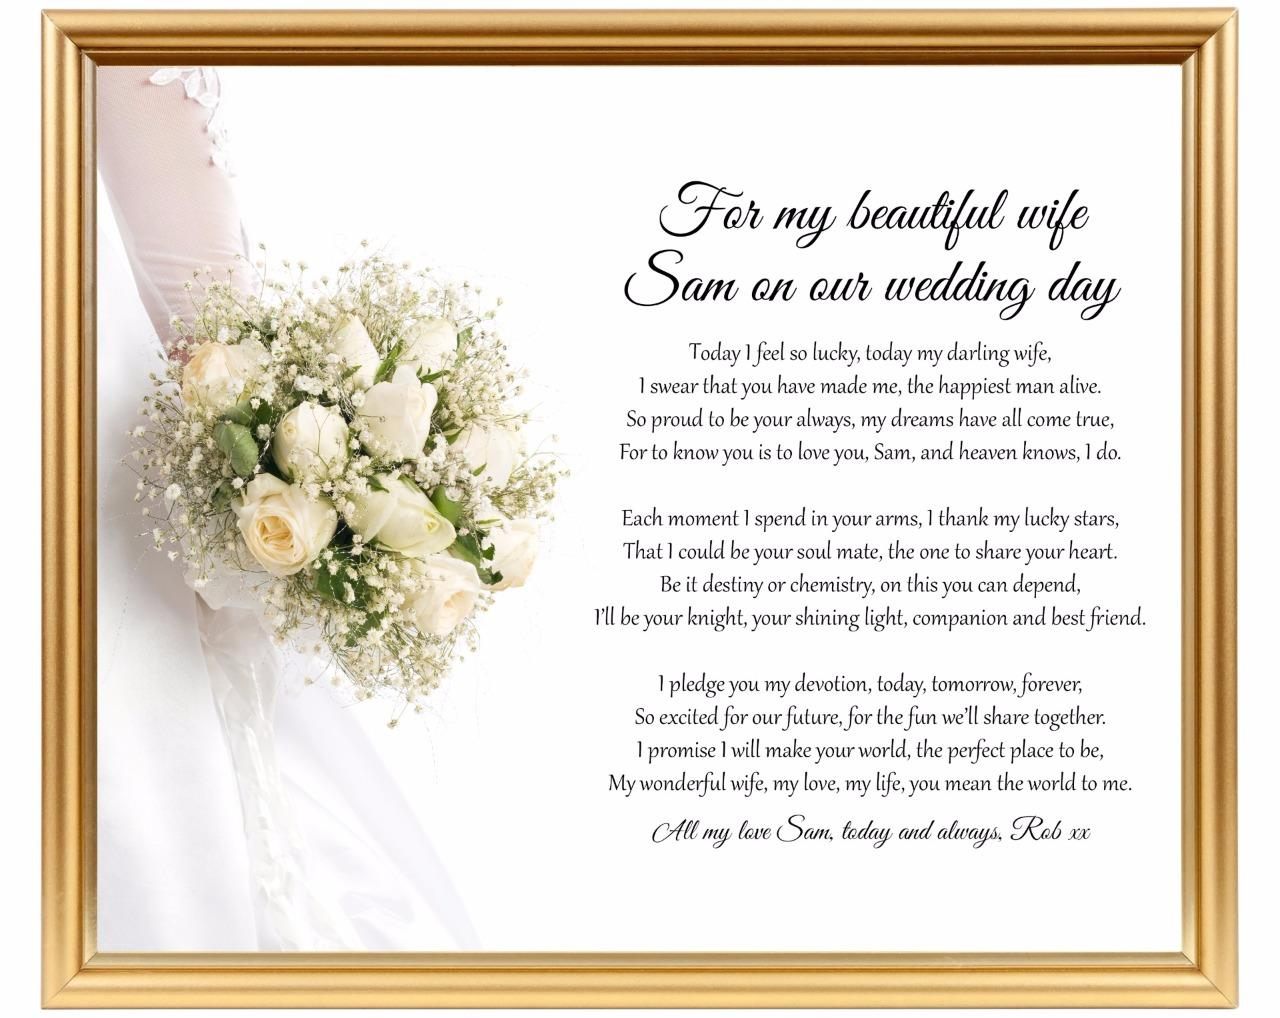 Wedding gift for wife - Groom to bride gift - Personalised keepsake ...